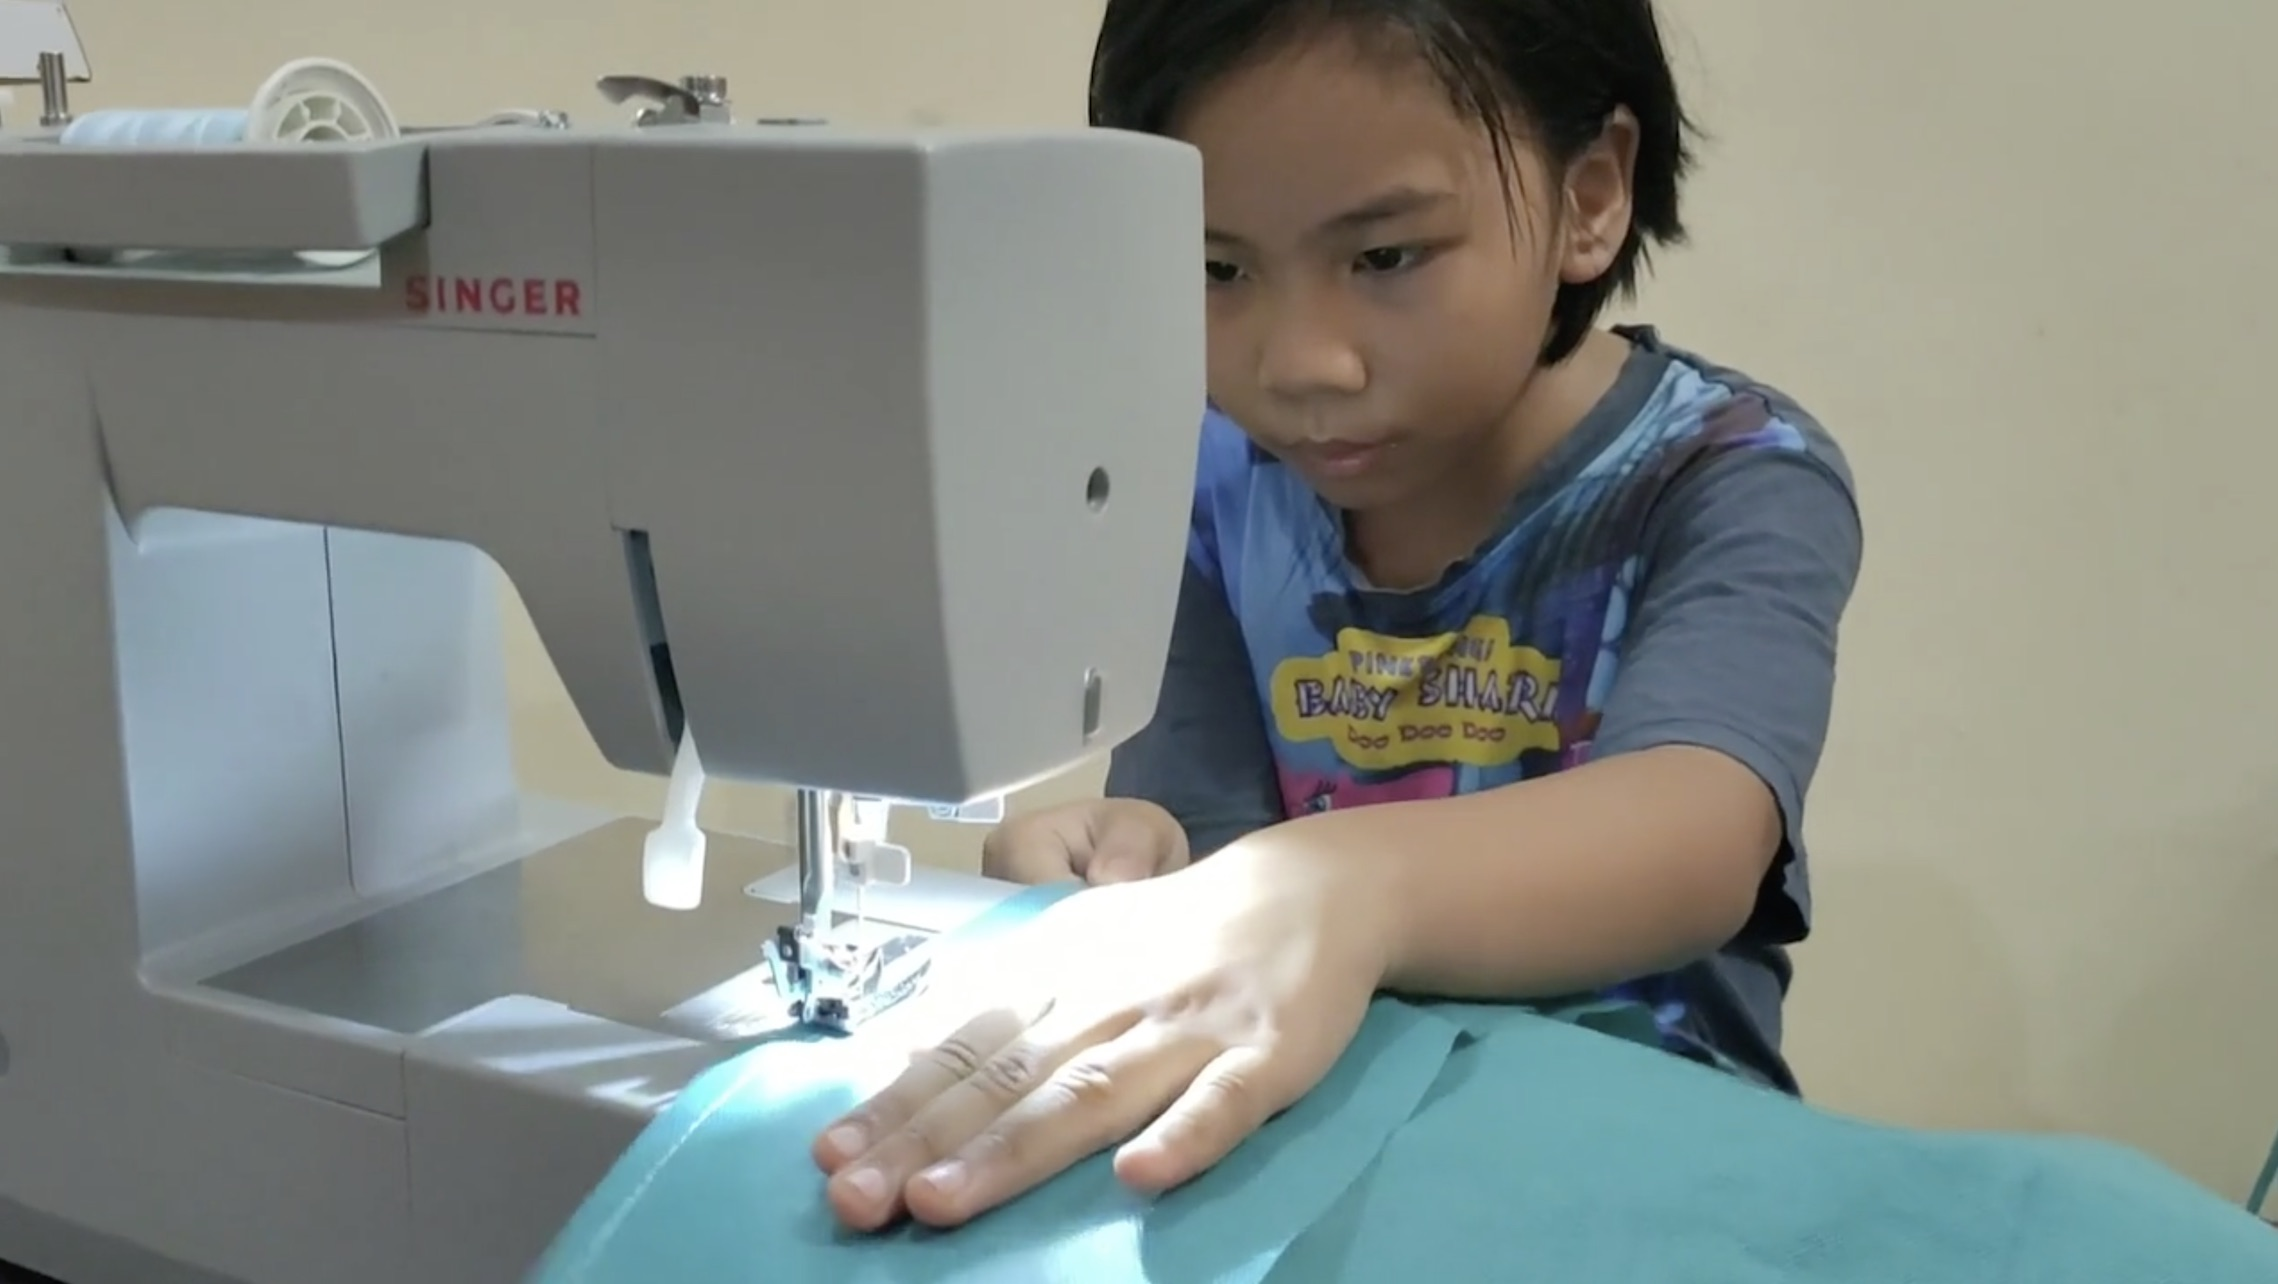 Malaysian girl sewing ppe